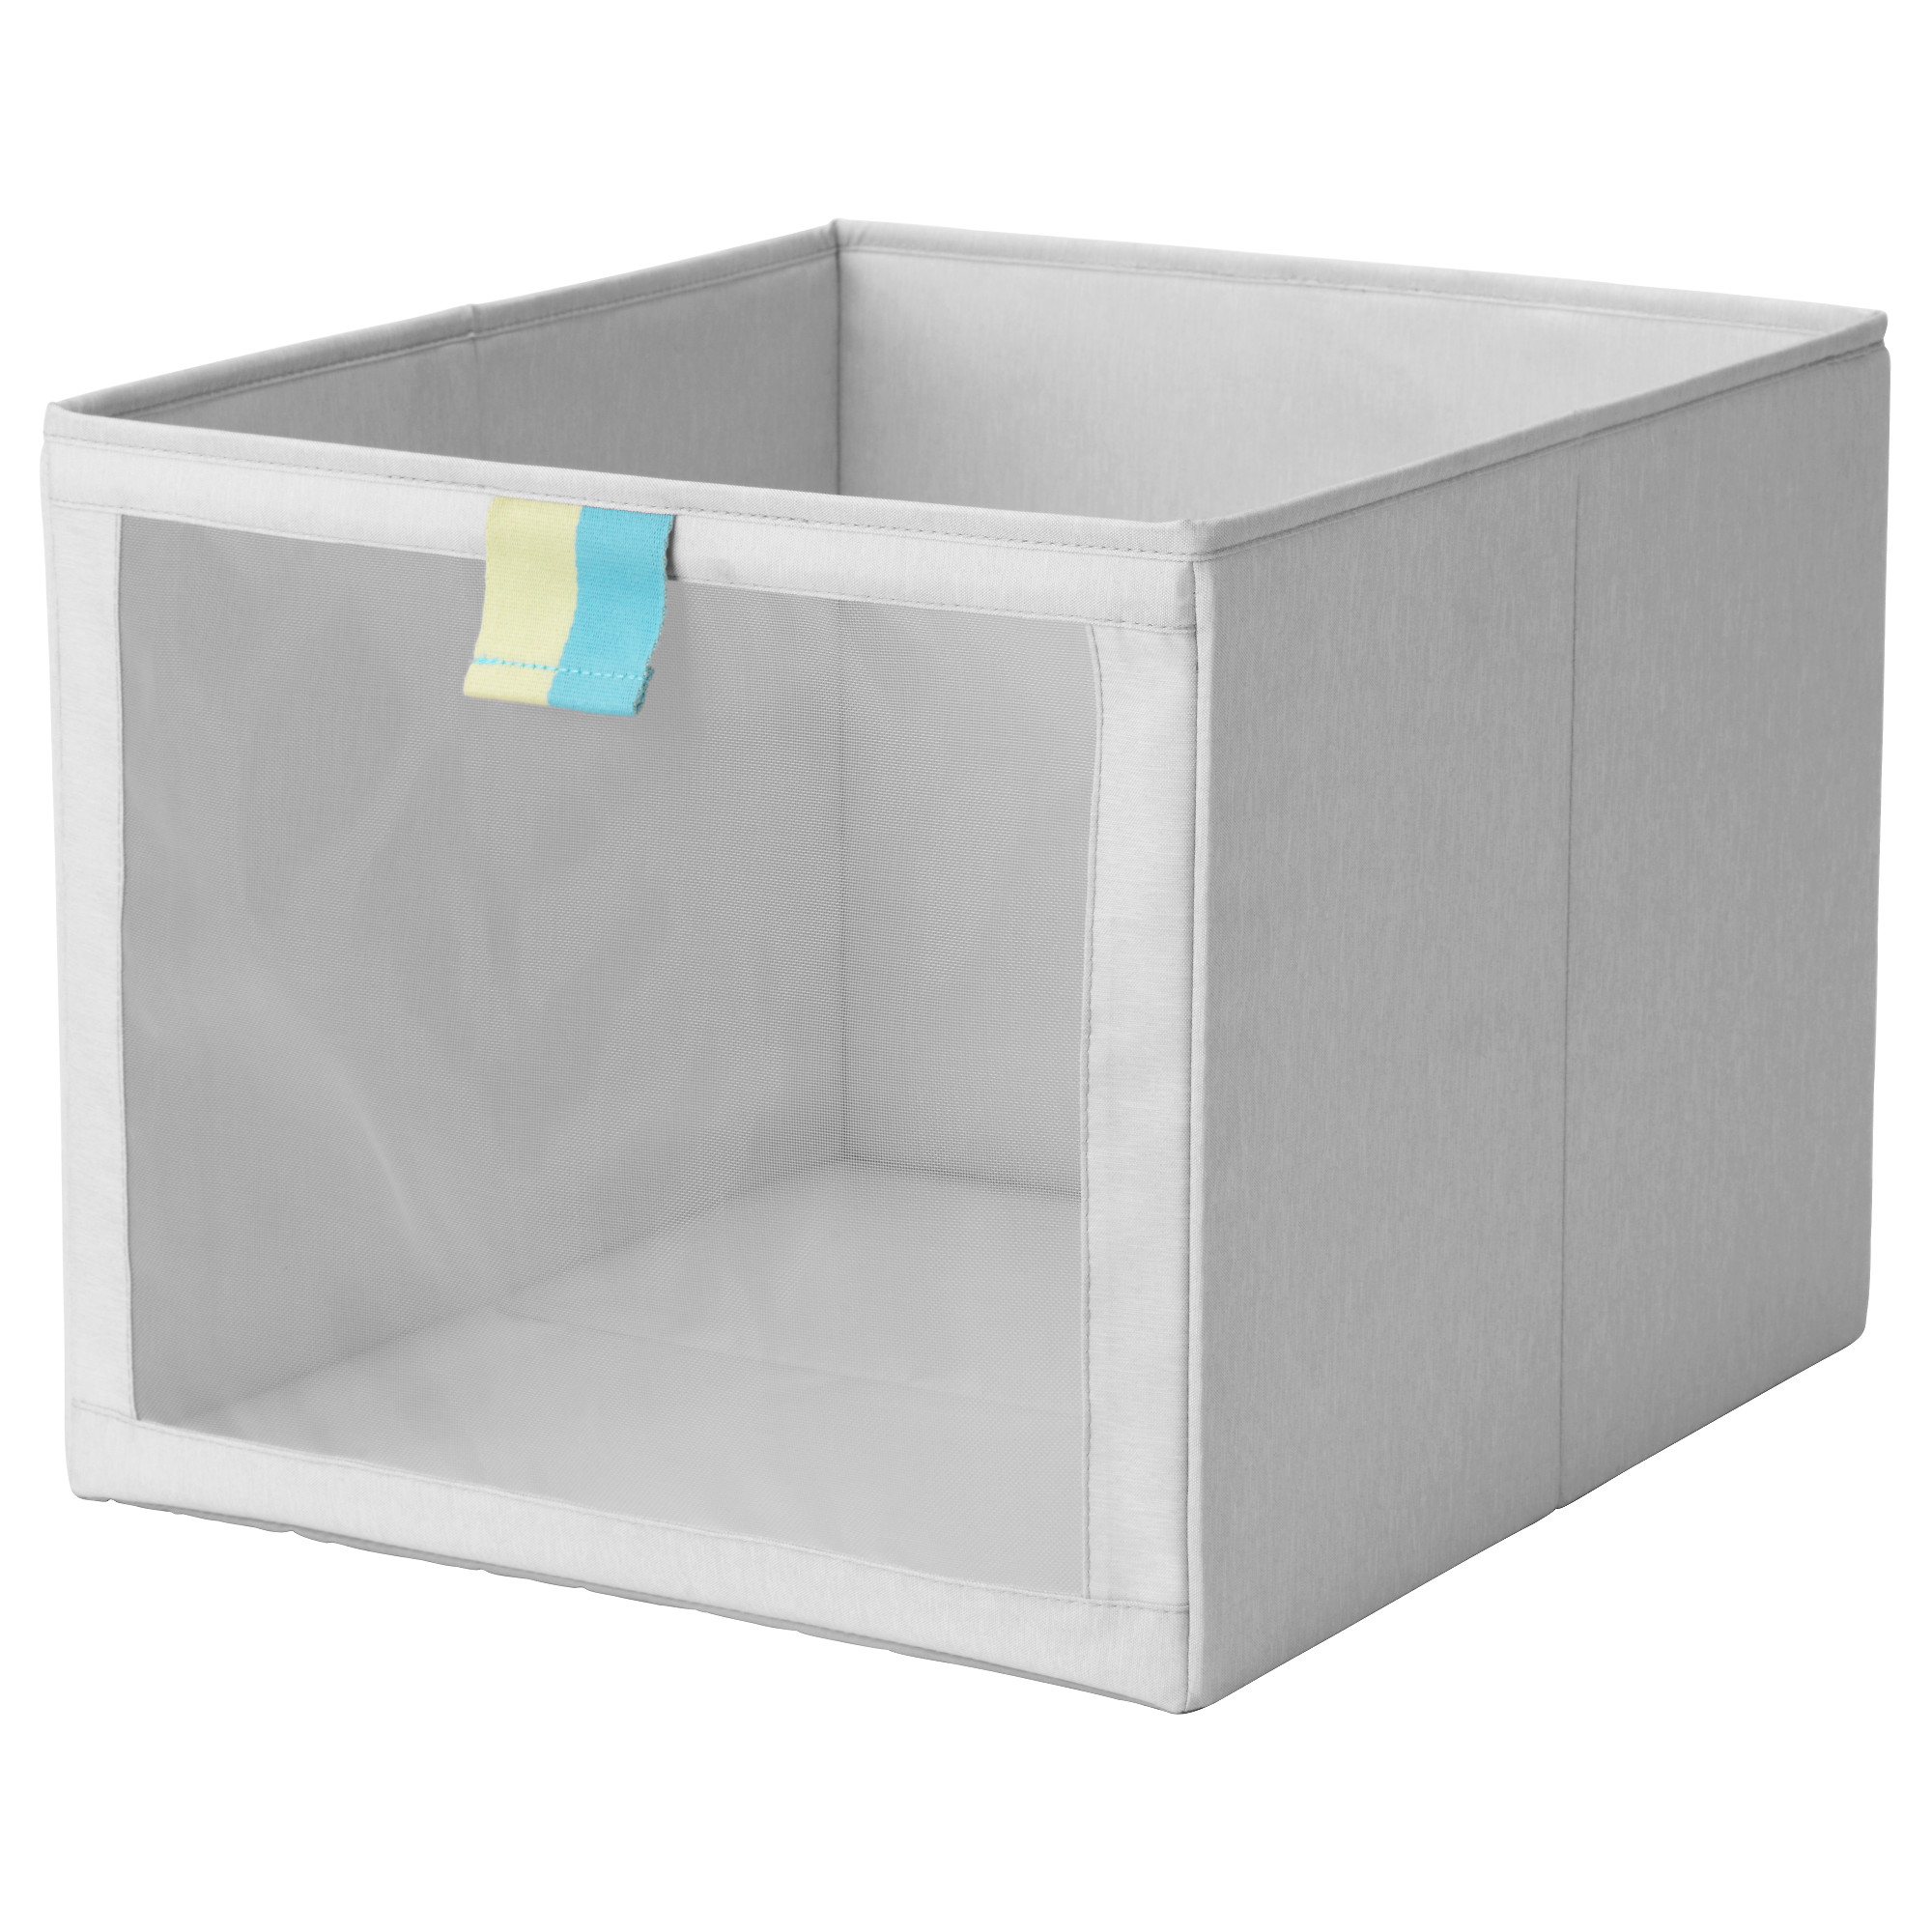 Ikea plastic storage bins best storage design 2017 for Cardboard drawers ikea